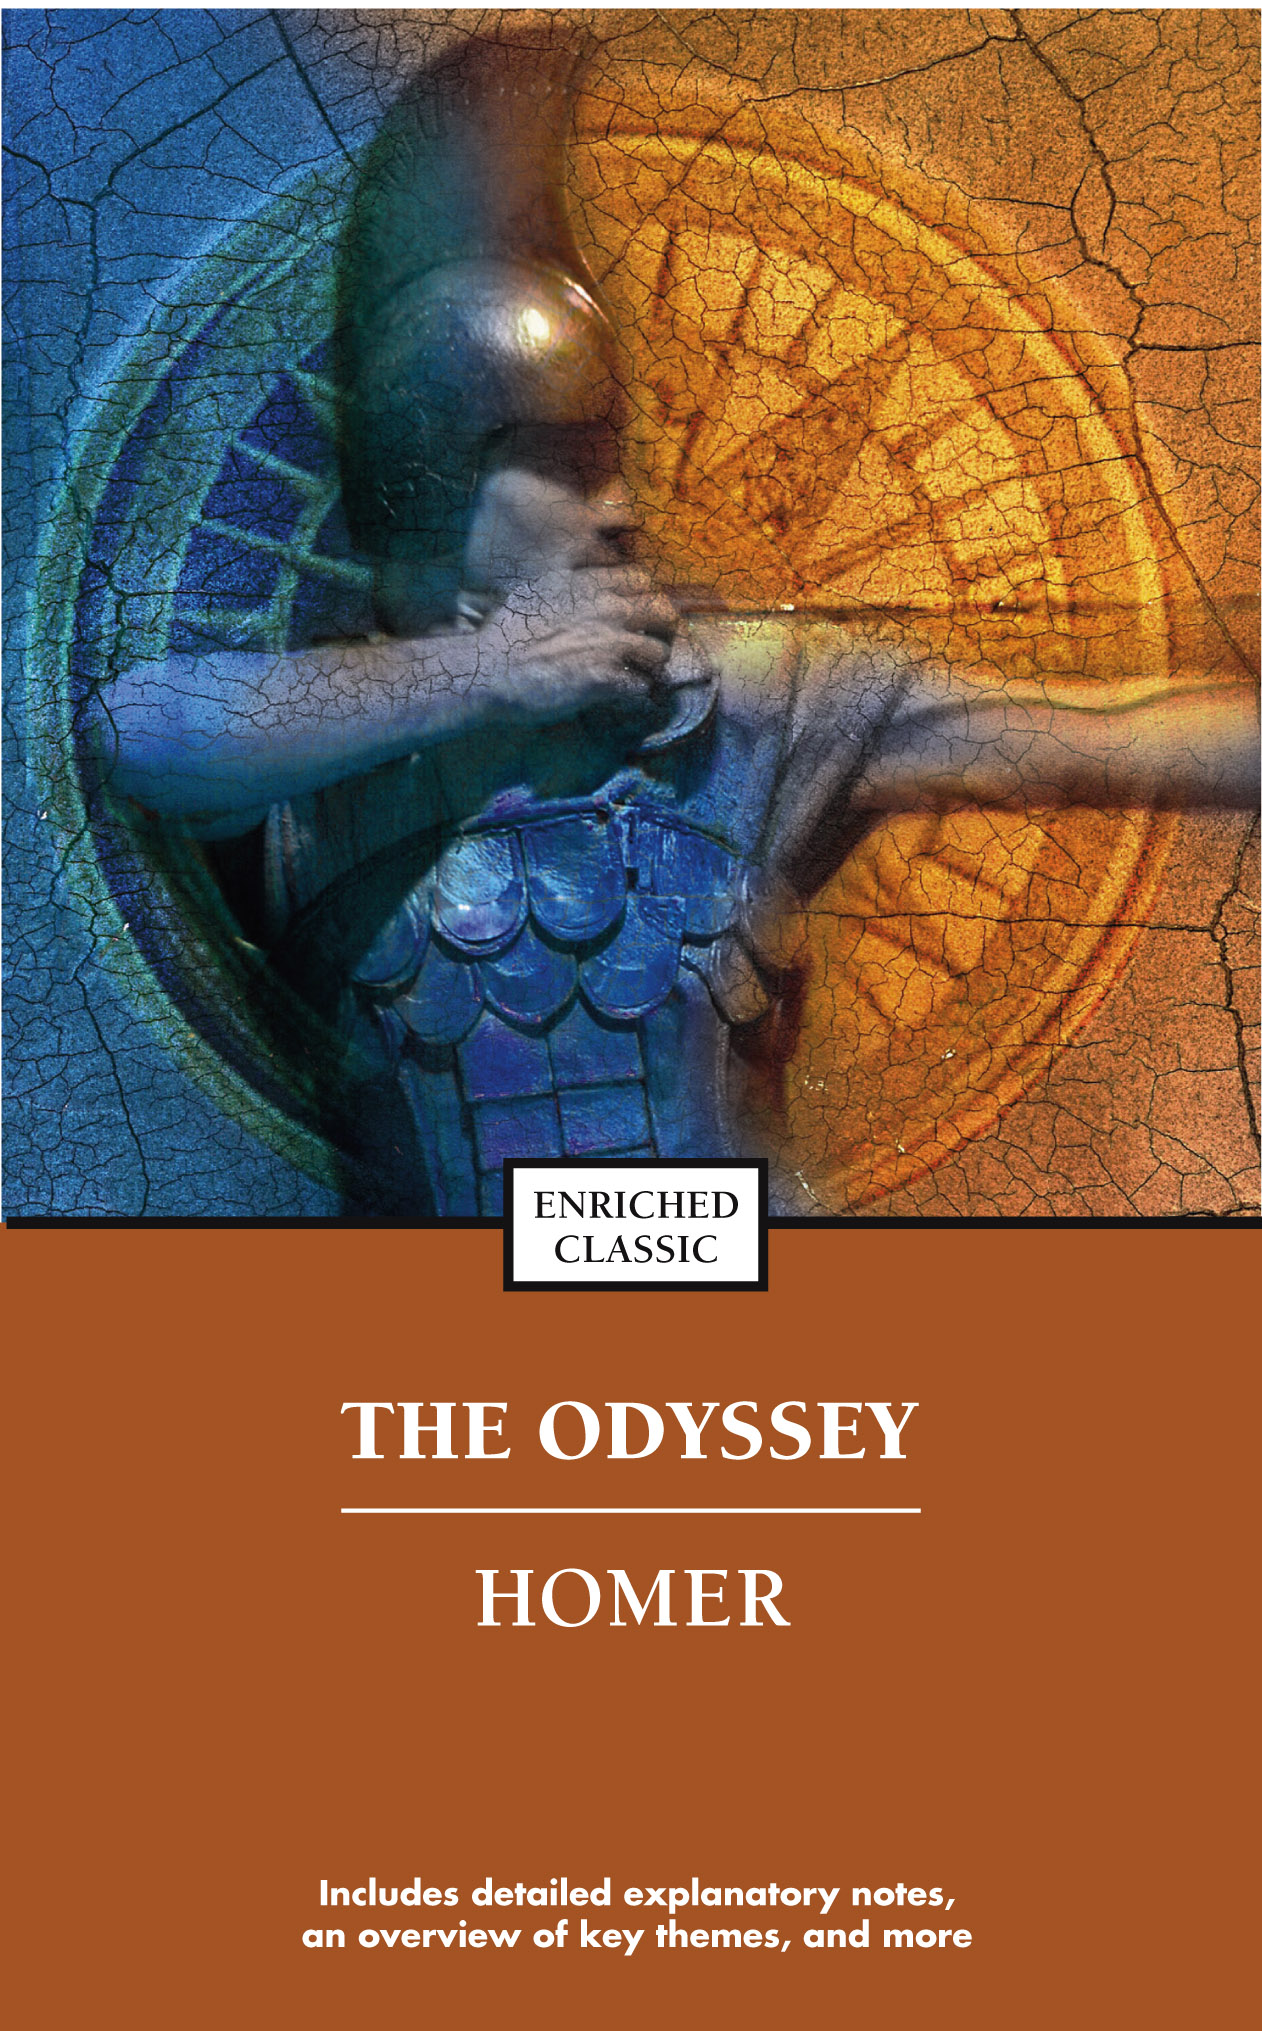 an analysis of the theme of pride in the odyssey by homer The core theme of the epic is given away in its very first lines  sing, o goddess, the anger [mênis] of achilles son of peleus, that brought countless ills upon the achaeans many a brave soul [psukhê] did it send hurrying down to hades, and many.